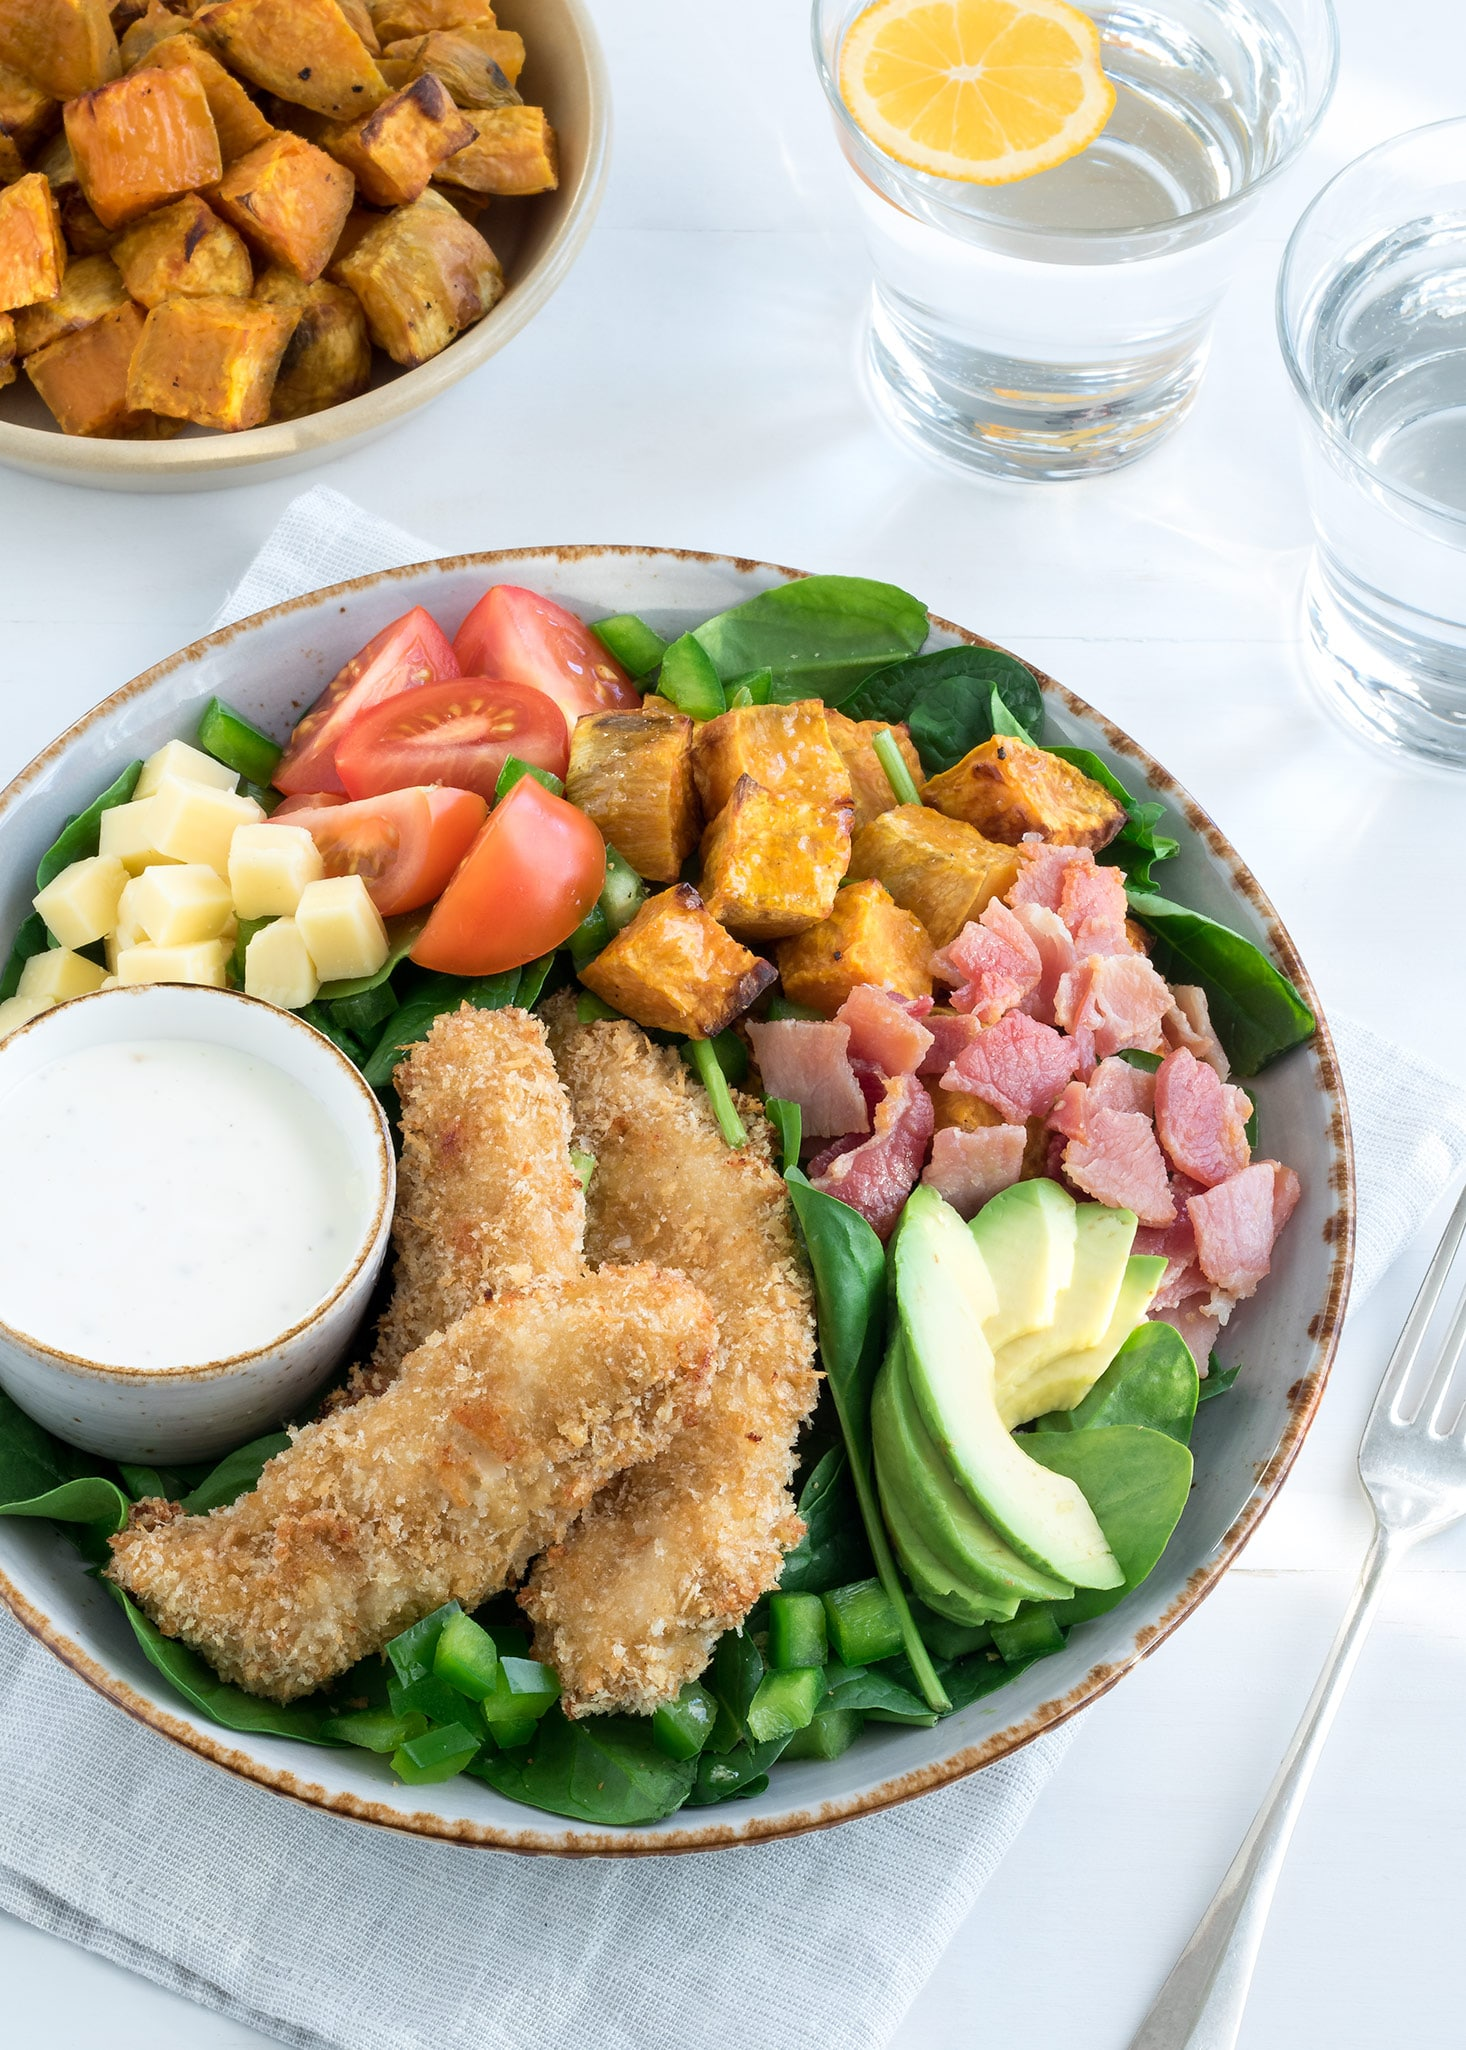 Crunchy crumbed chicken tenders served on a salad packed with tasty ingredients. This is a really yummy meal that still has decent nutritional value.